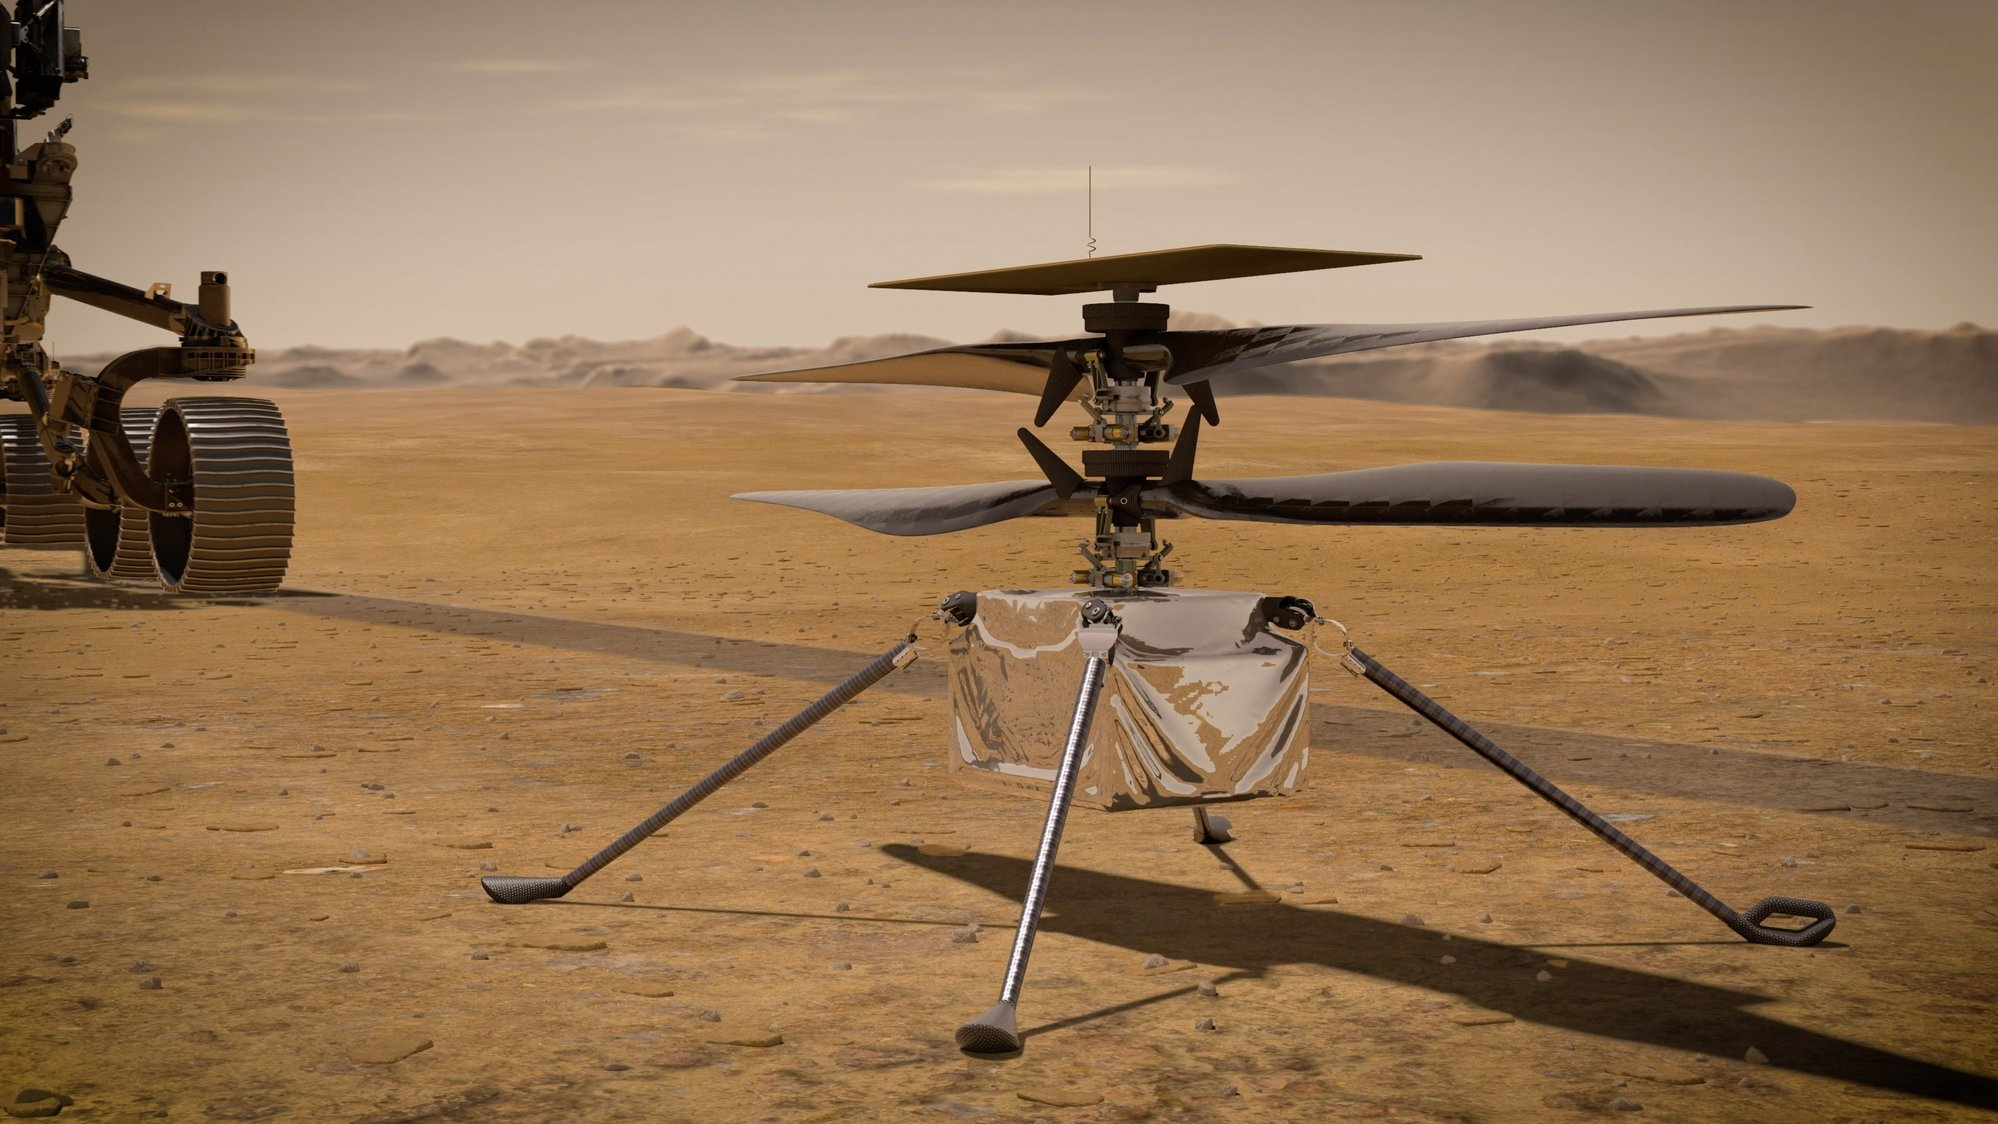 epa09112949 An undated handout artist's concept made available by NASA shows the Ingenuity Helicopter detached from NASA's Perseverance Mars rover, issued 03 April 2021. The helicopter is expected to fly in a dedicated fly zone no earlier than 08 April. Having landed on Mars on 18 February, Perseverance's main mission on Mars is astrobiology and the search for signs of ancient microbial life, according to NASA.  EPA/NASA/JPL-Caltech HANDOUT  HANDOUT EDITORIAL USE ONLY/NO SALES